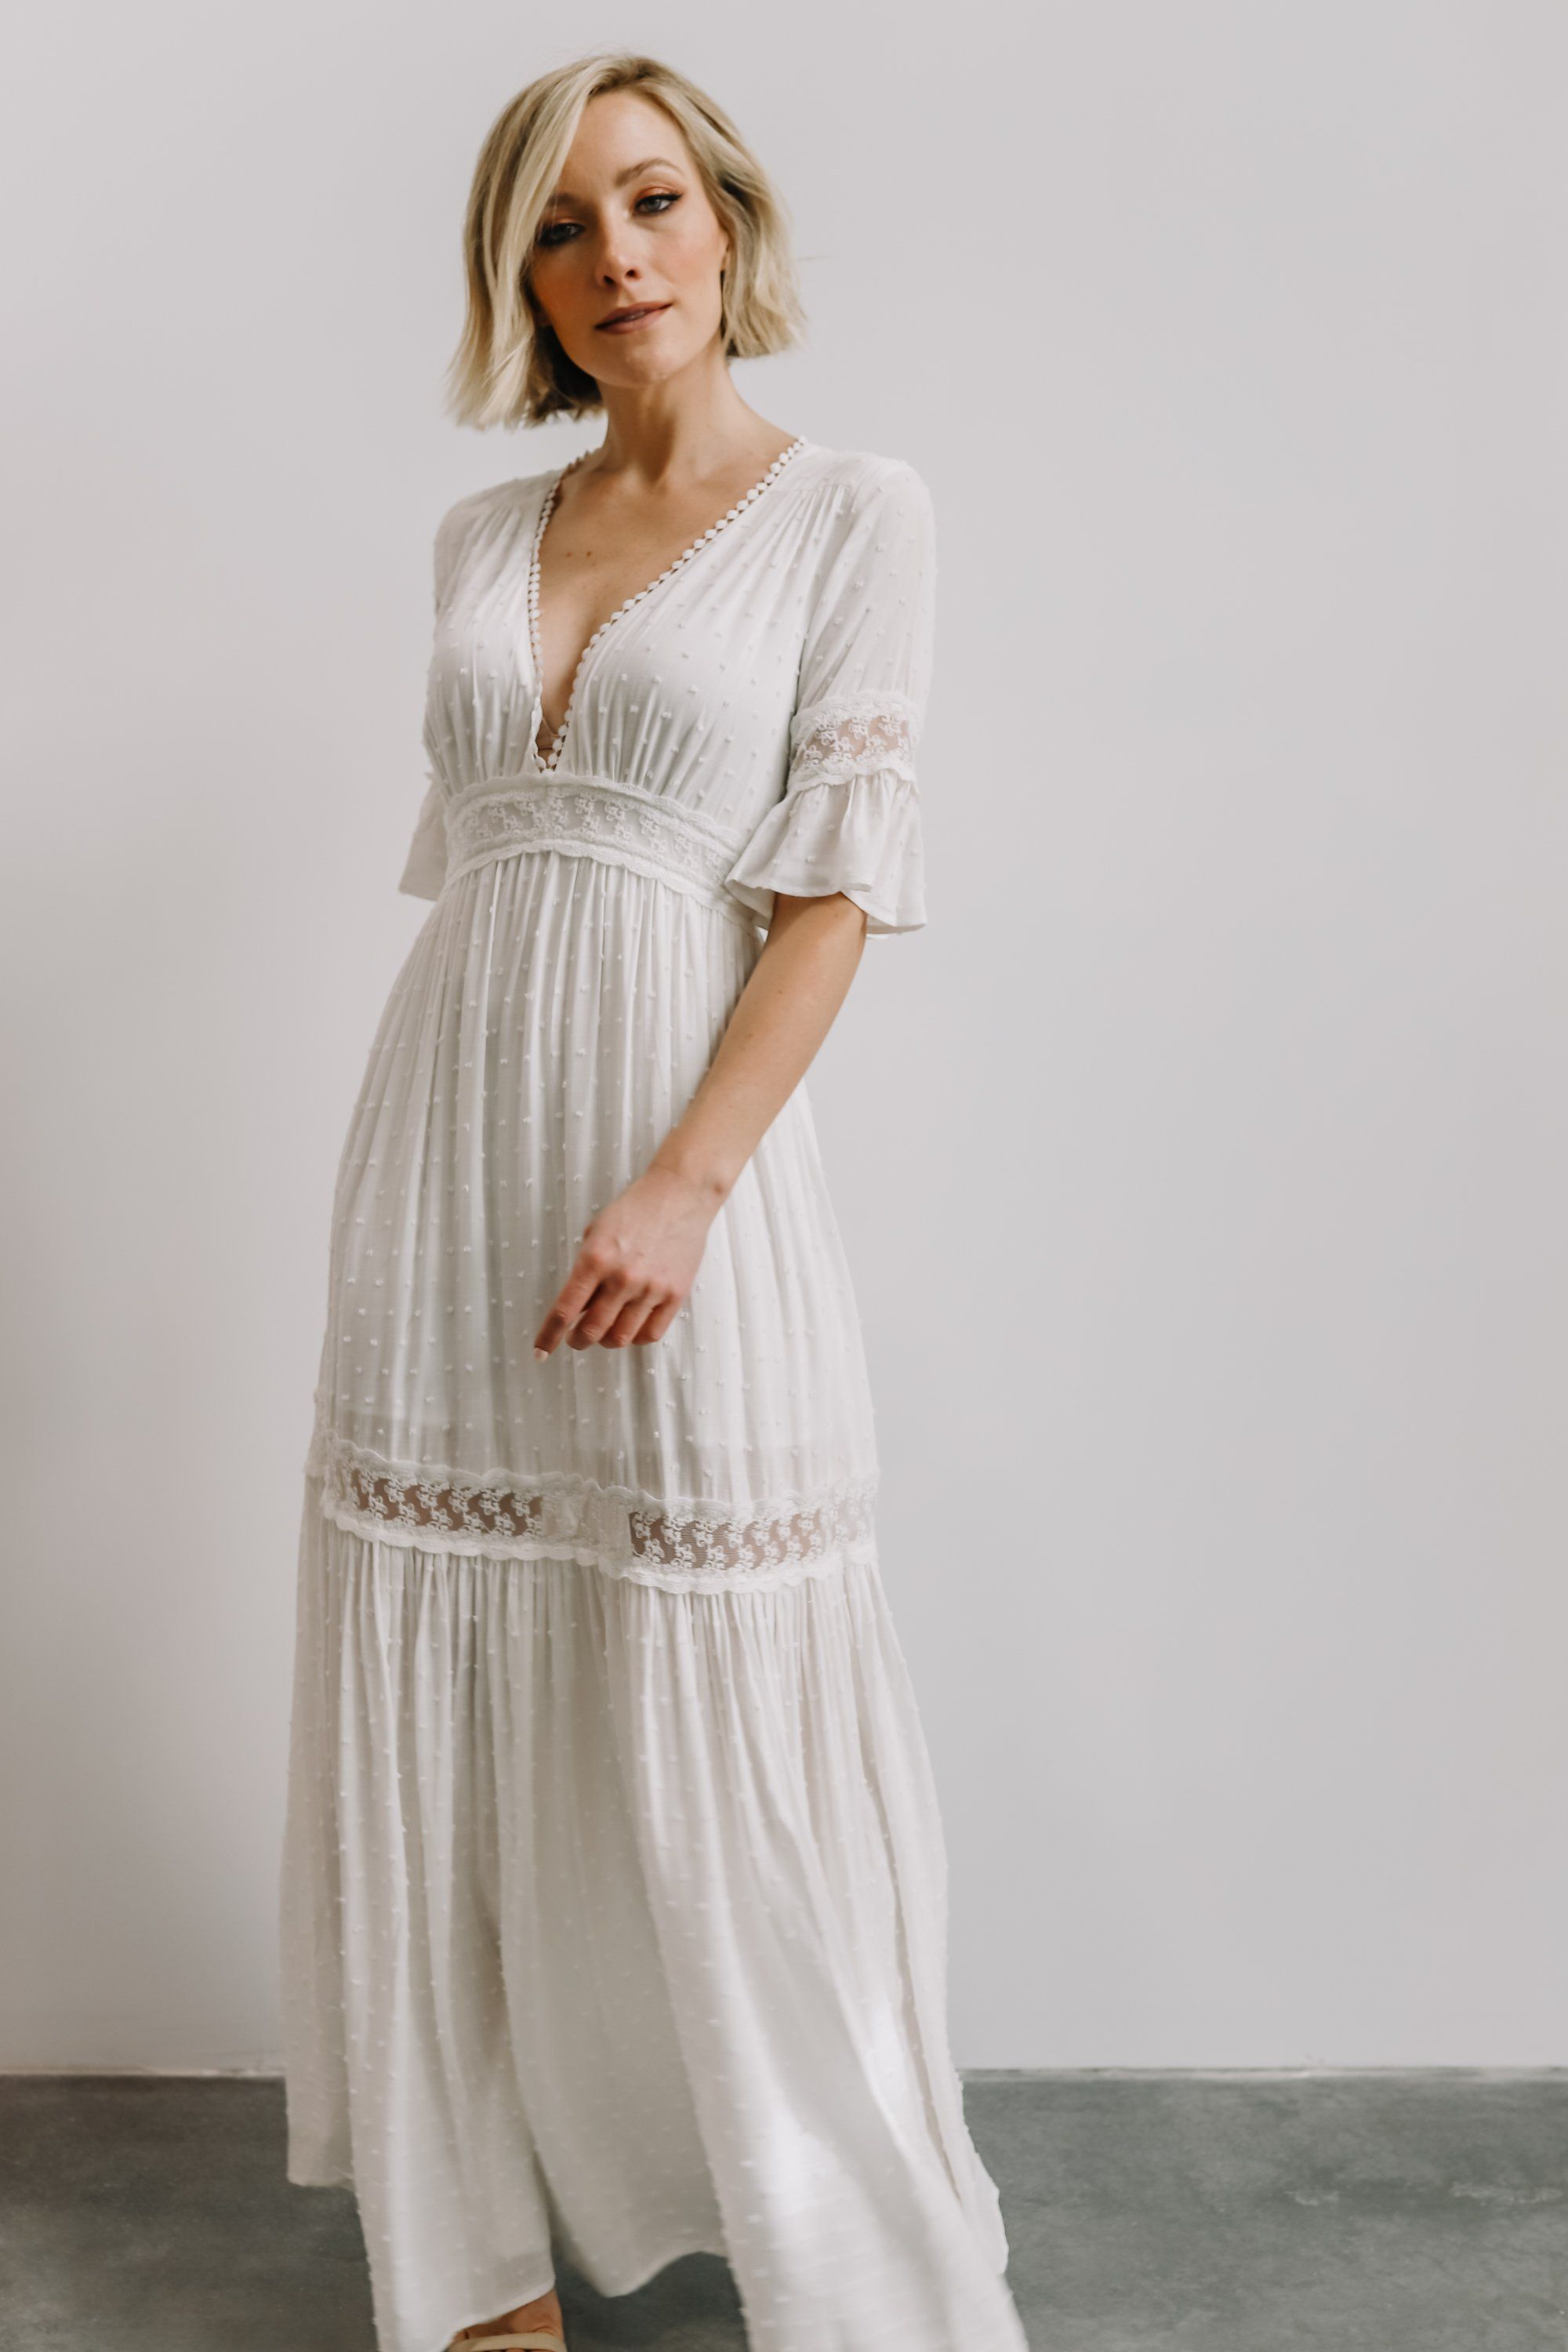 Features Beautiful Swiss Dot Material That Flows Beautifully Elastic At Back Waistdeep V Neckbutton Closure W White Lace Maxi Dress Maxi Dress White Lace Maxi [ 3000 x 2000 Pixel ]